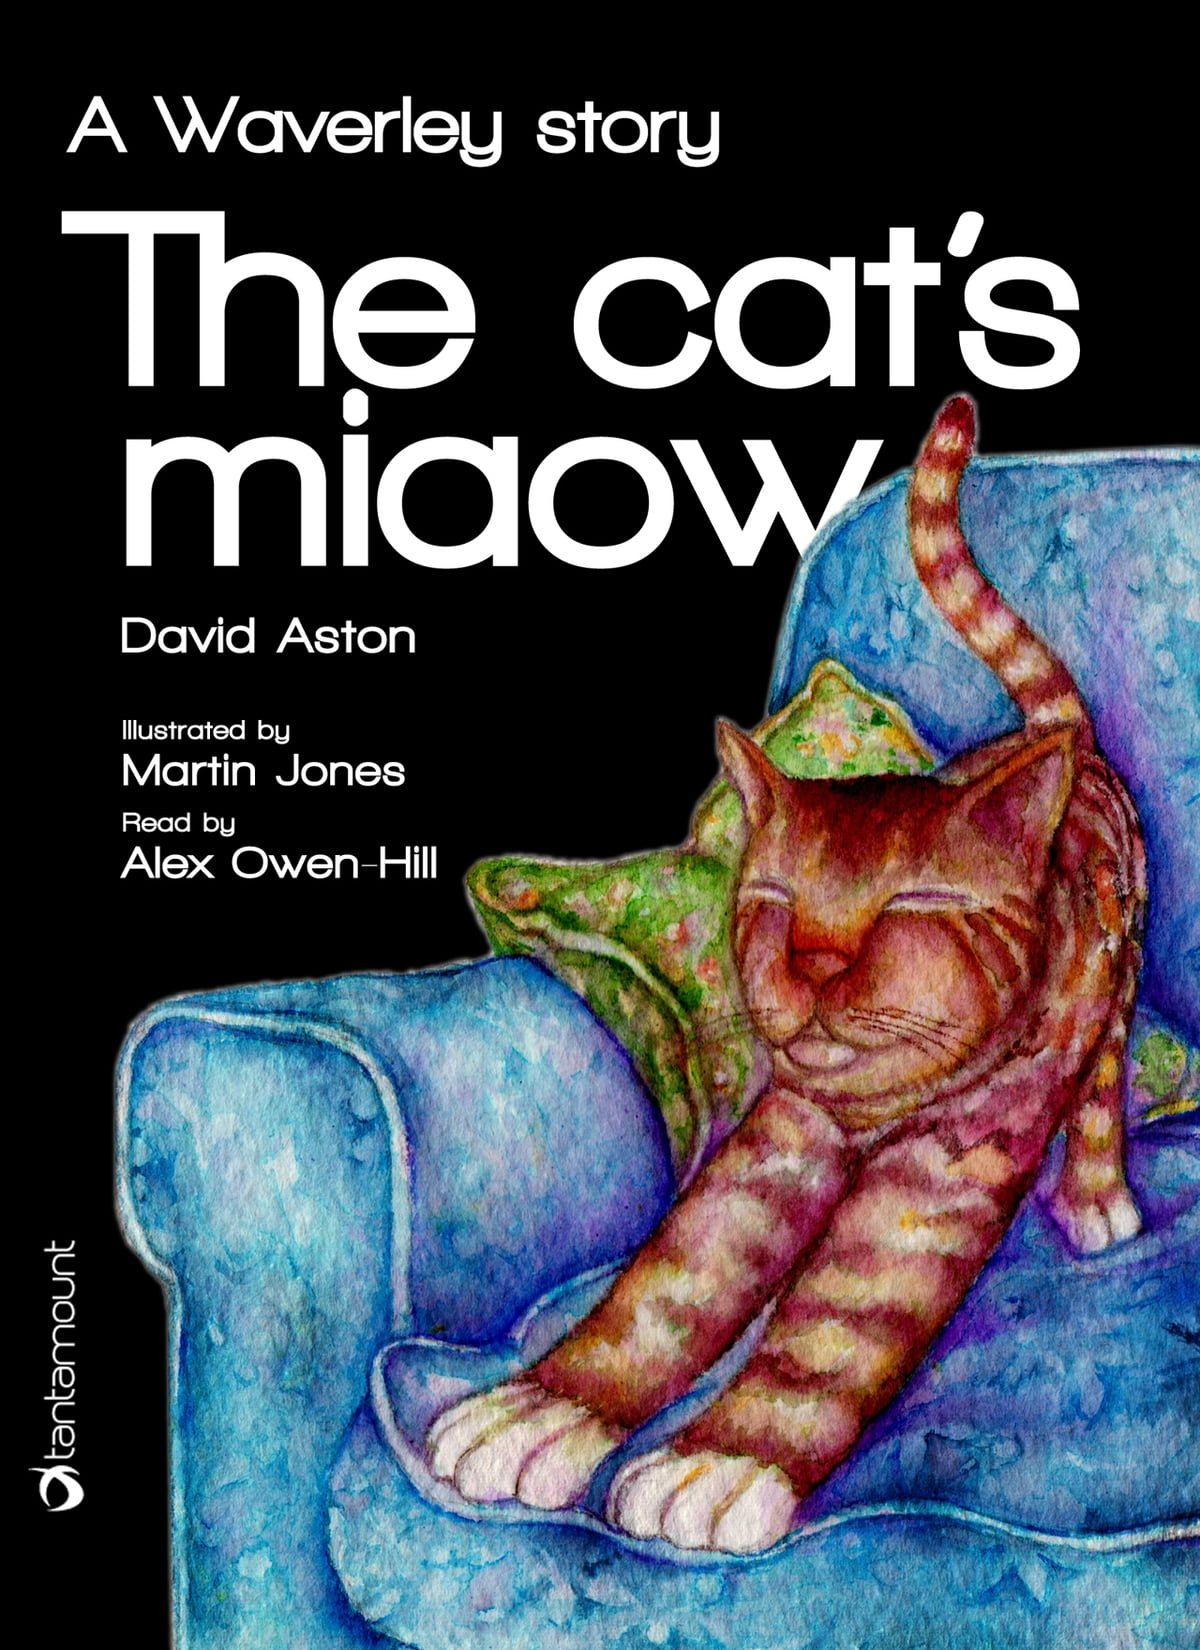 Kobo ebooks audiobooks ereaders and reading apps the cats miaow a waverley story ebook by david aston fandeluxe Document